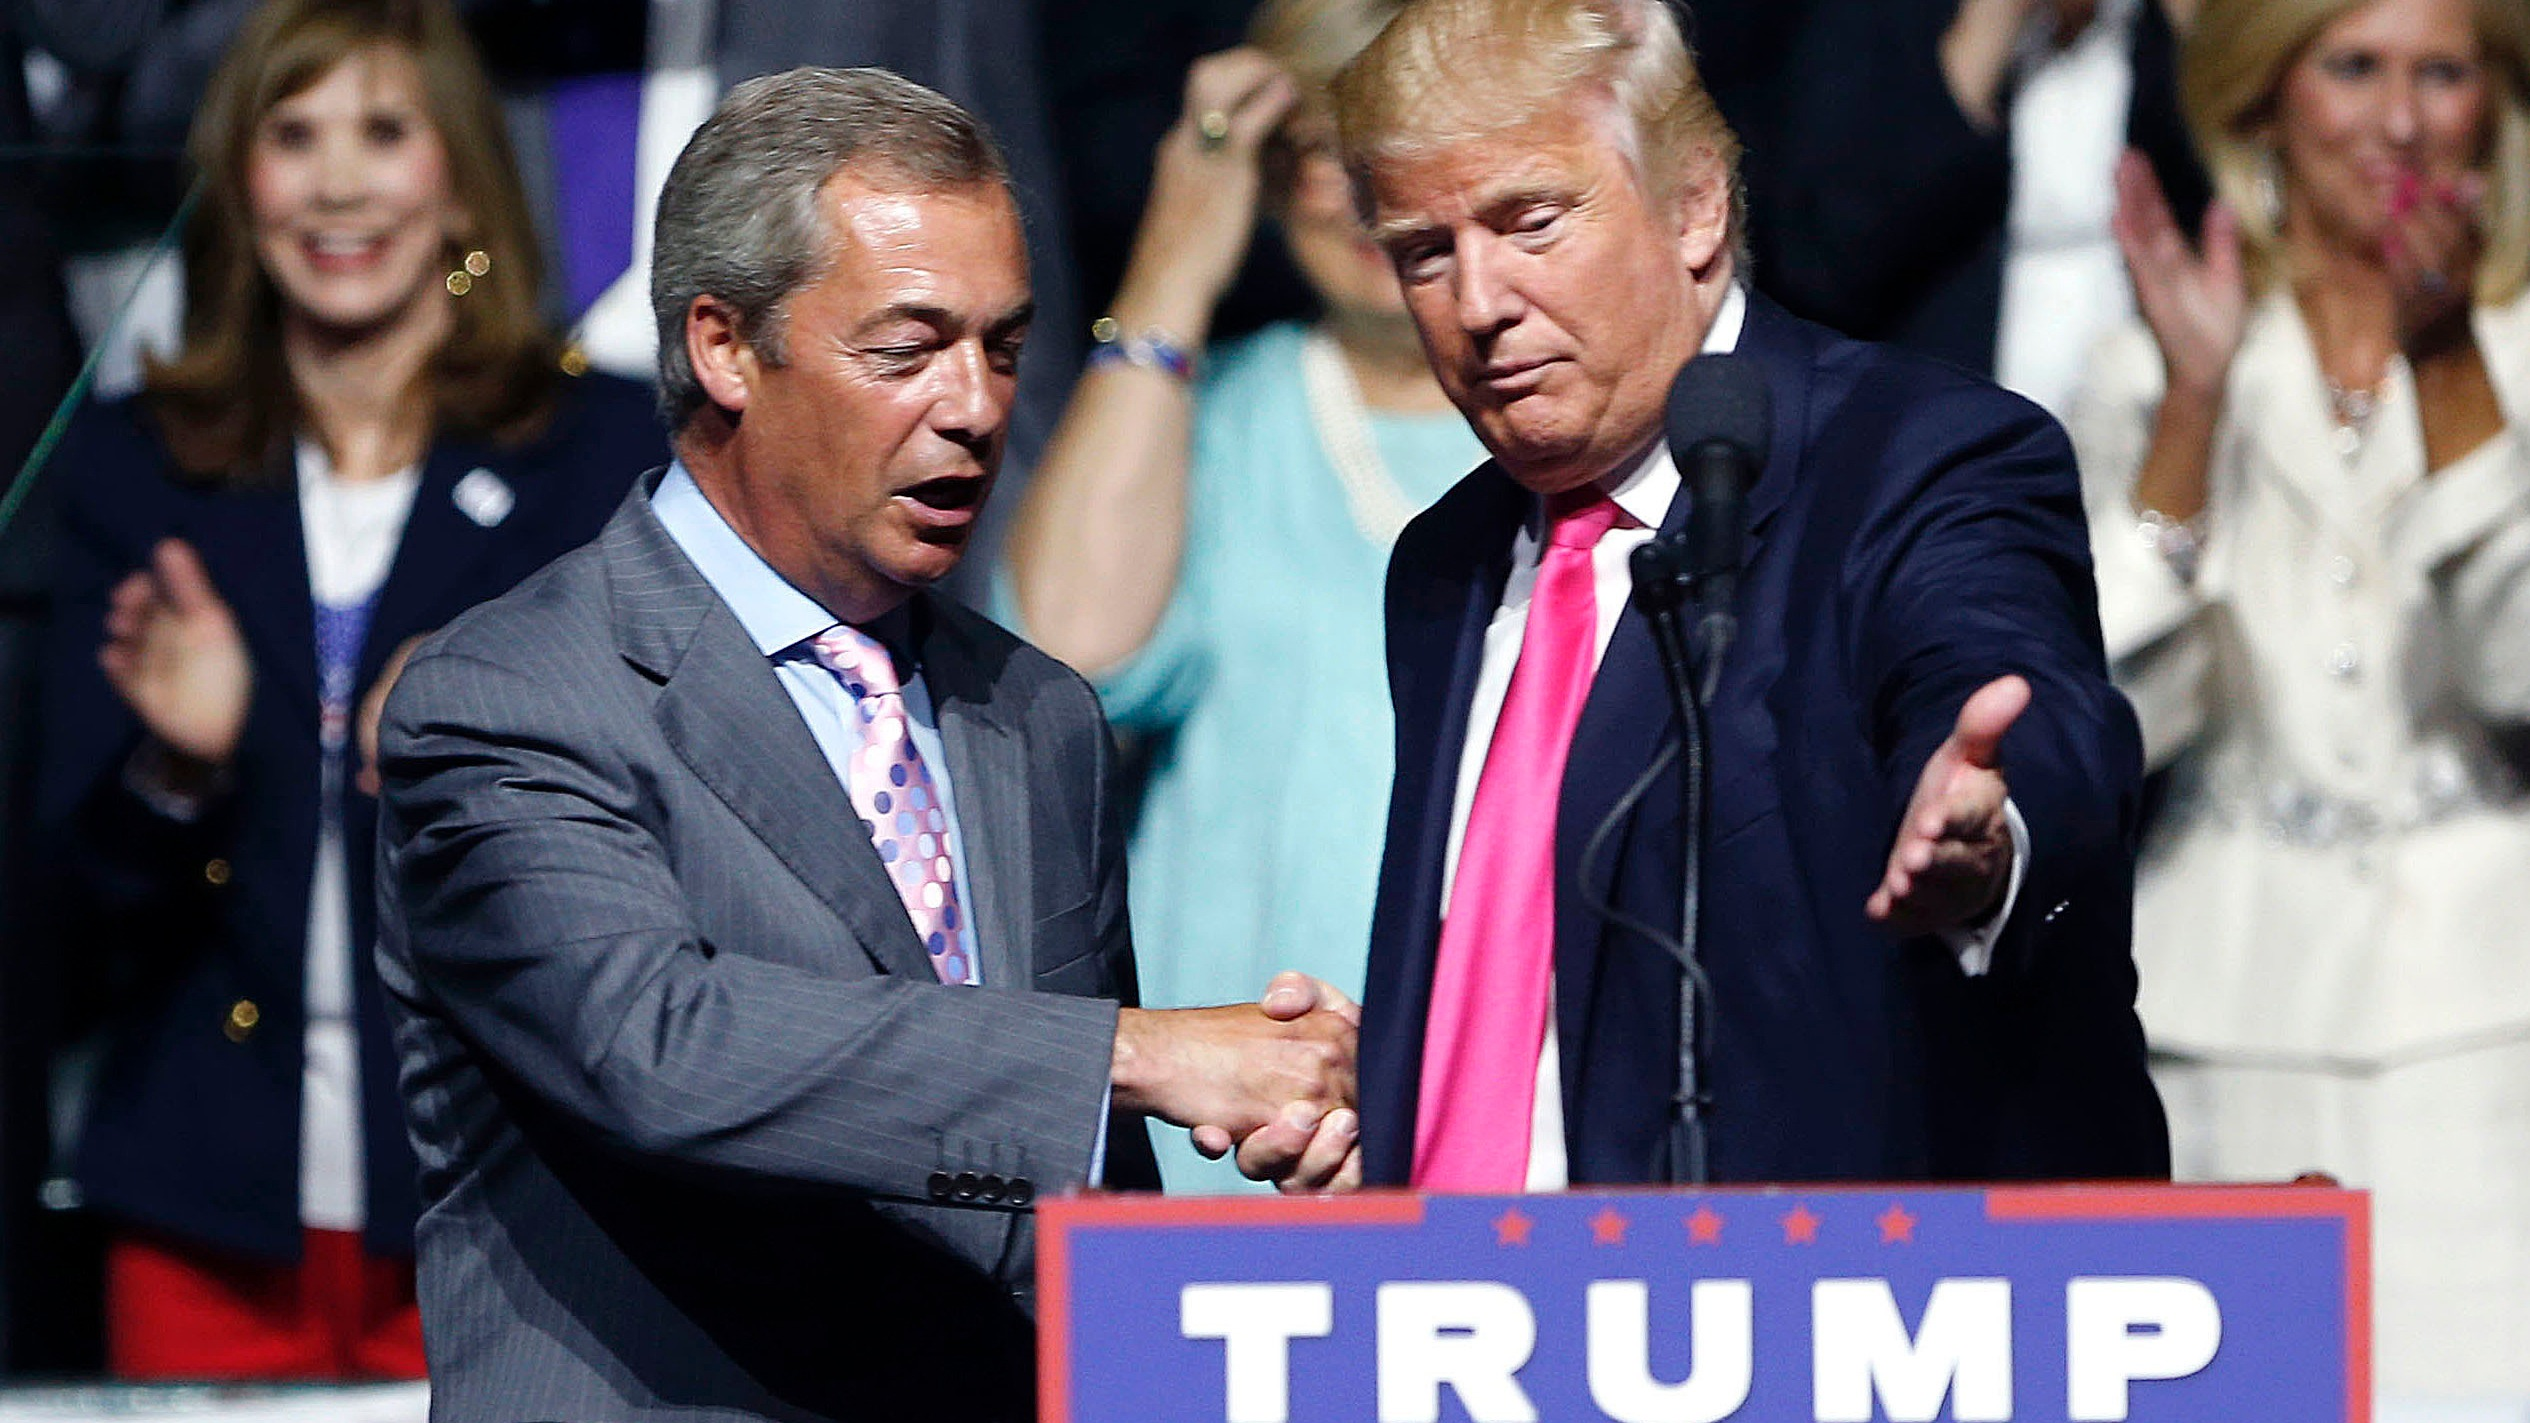 Farage: Trump is 'most resilient and bravest person I've ever met' | ITV News